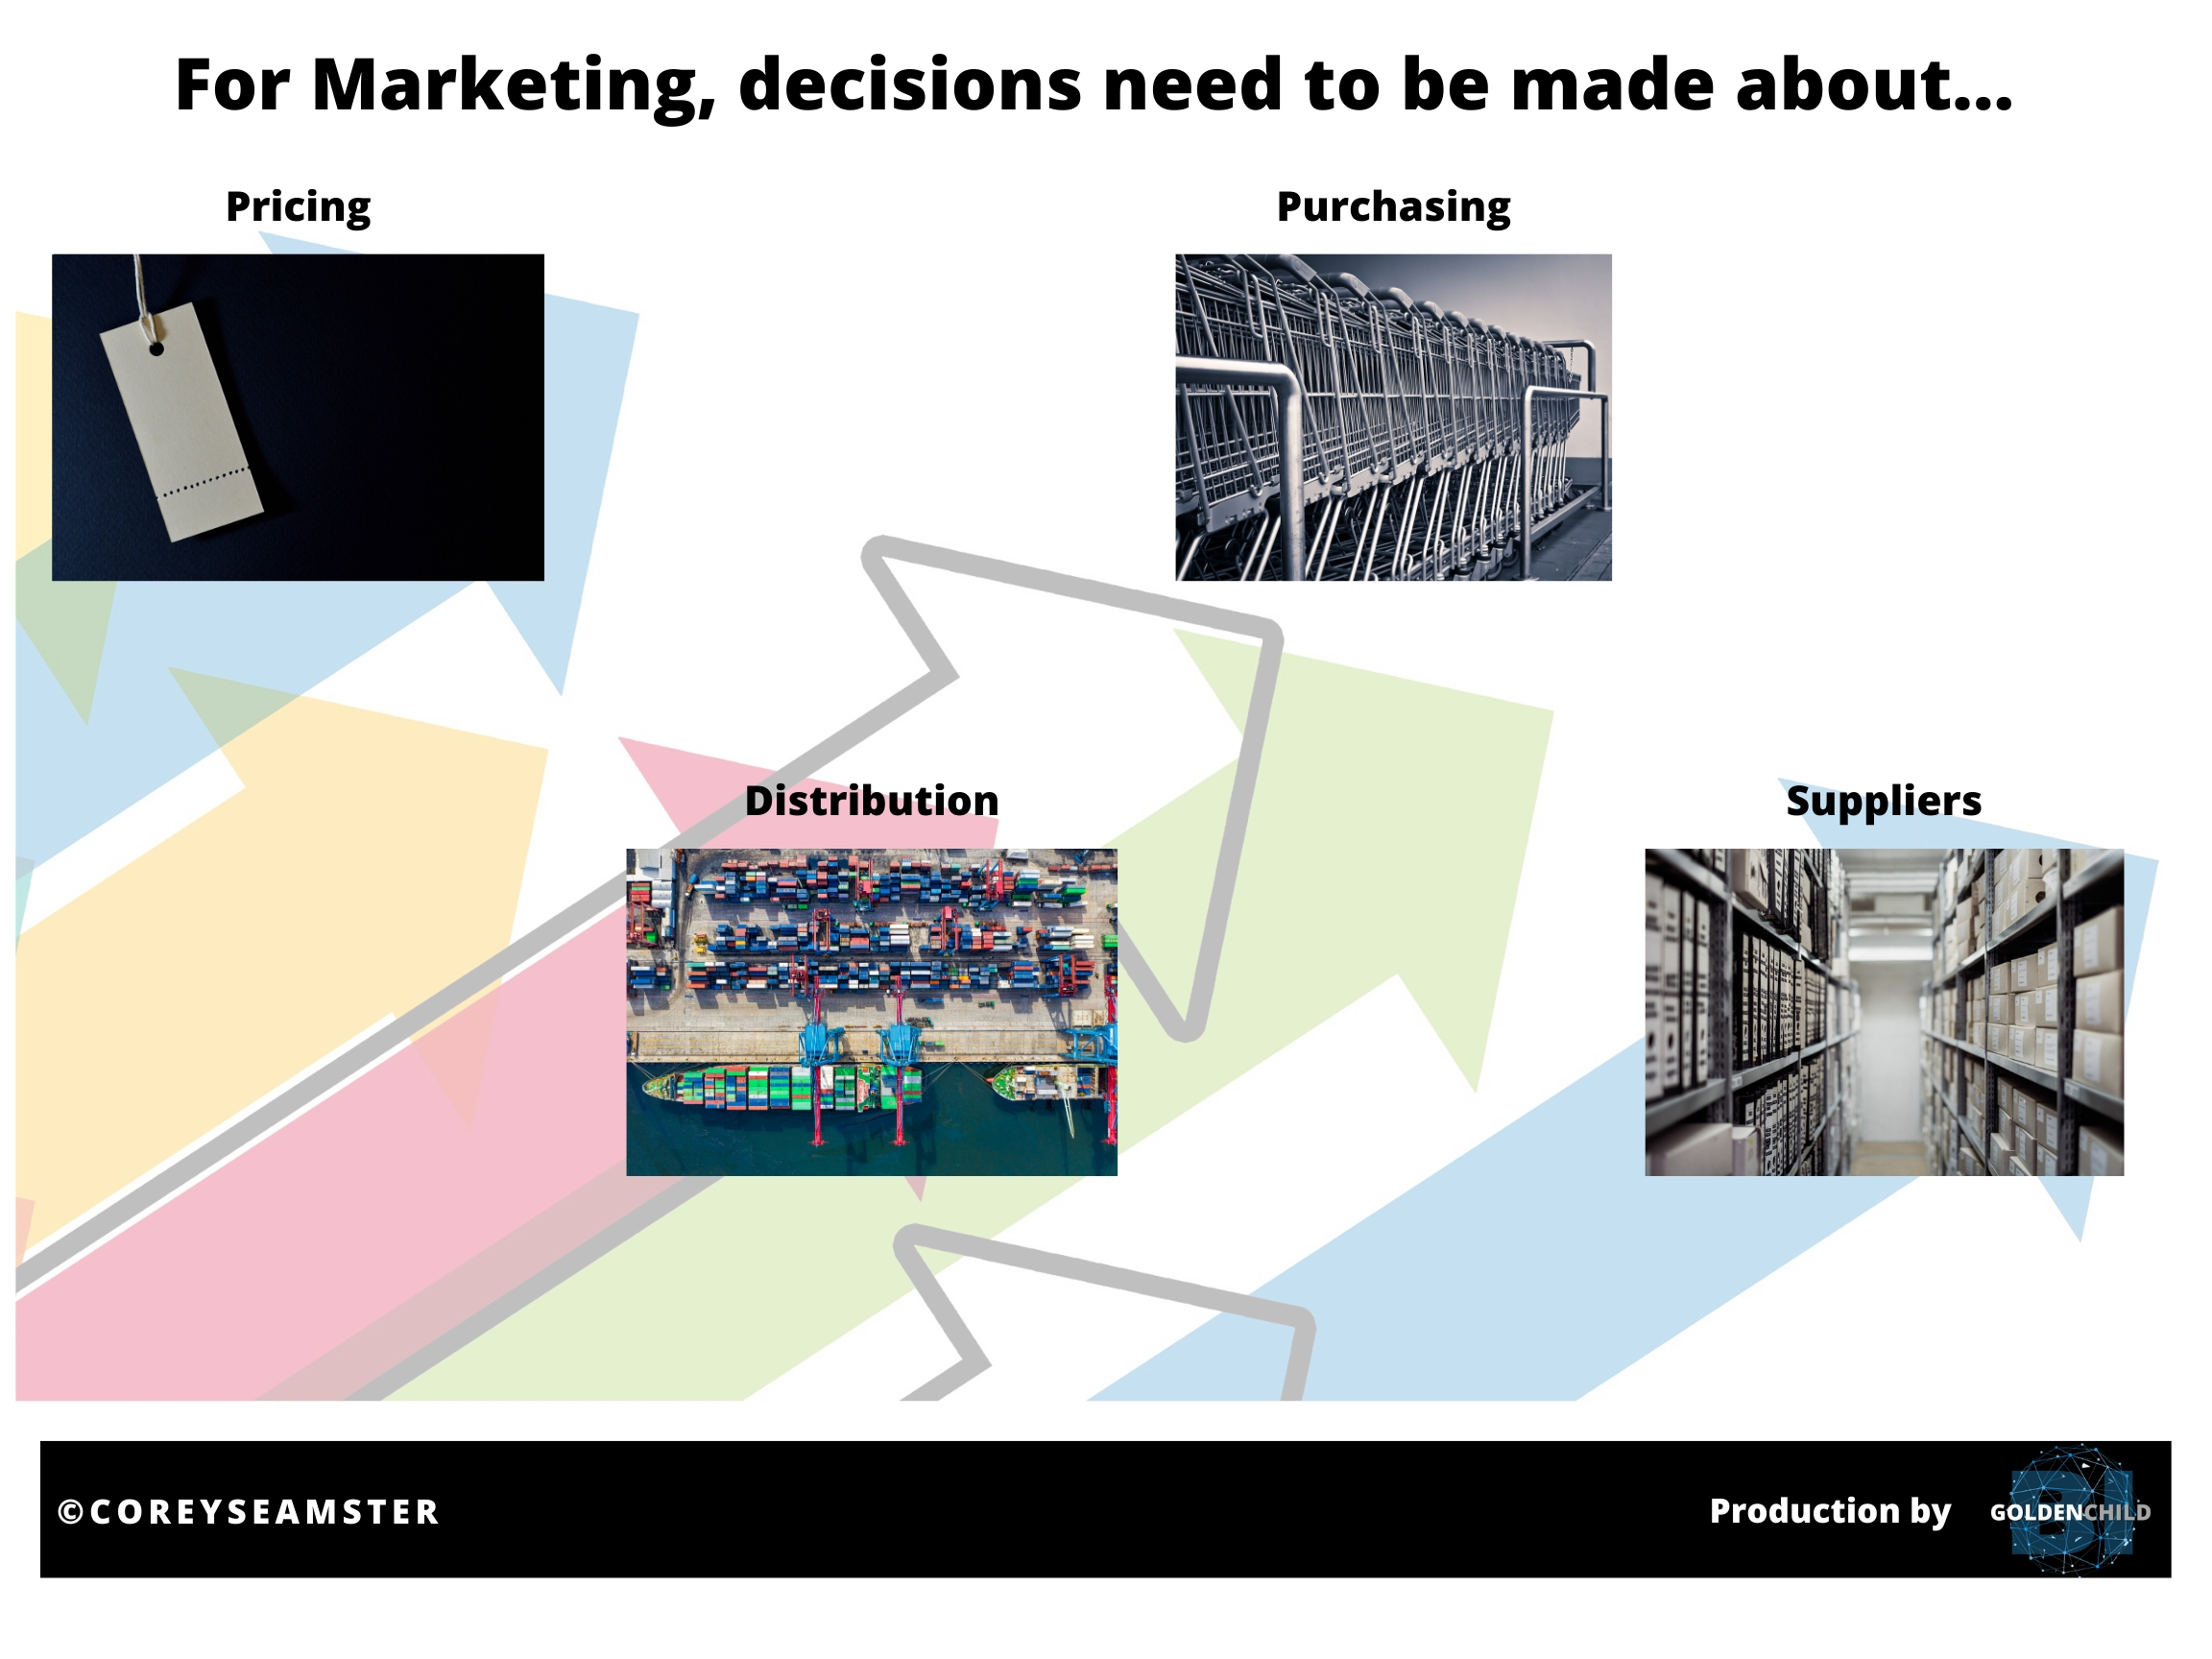 Source: Corey Seamster (2020) | Image: 3DR Marketing Decisions using sample data